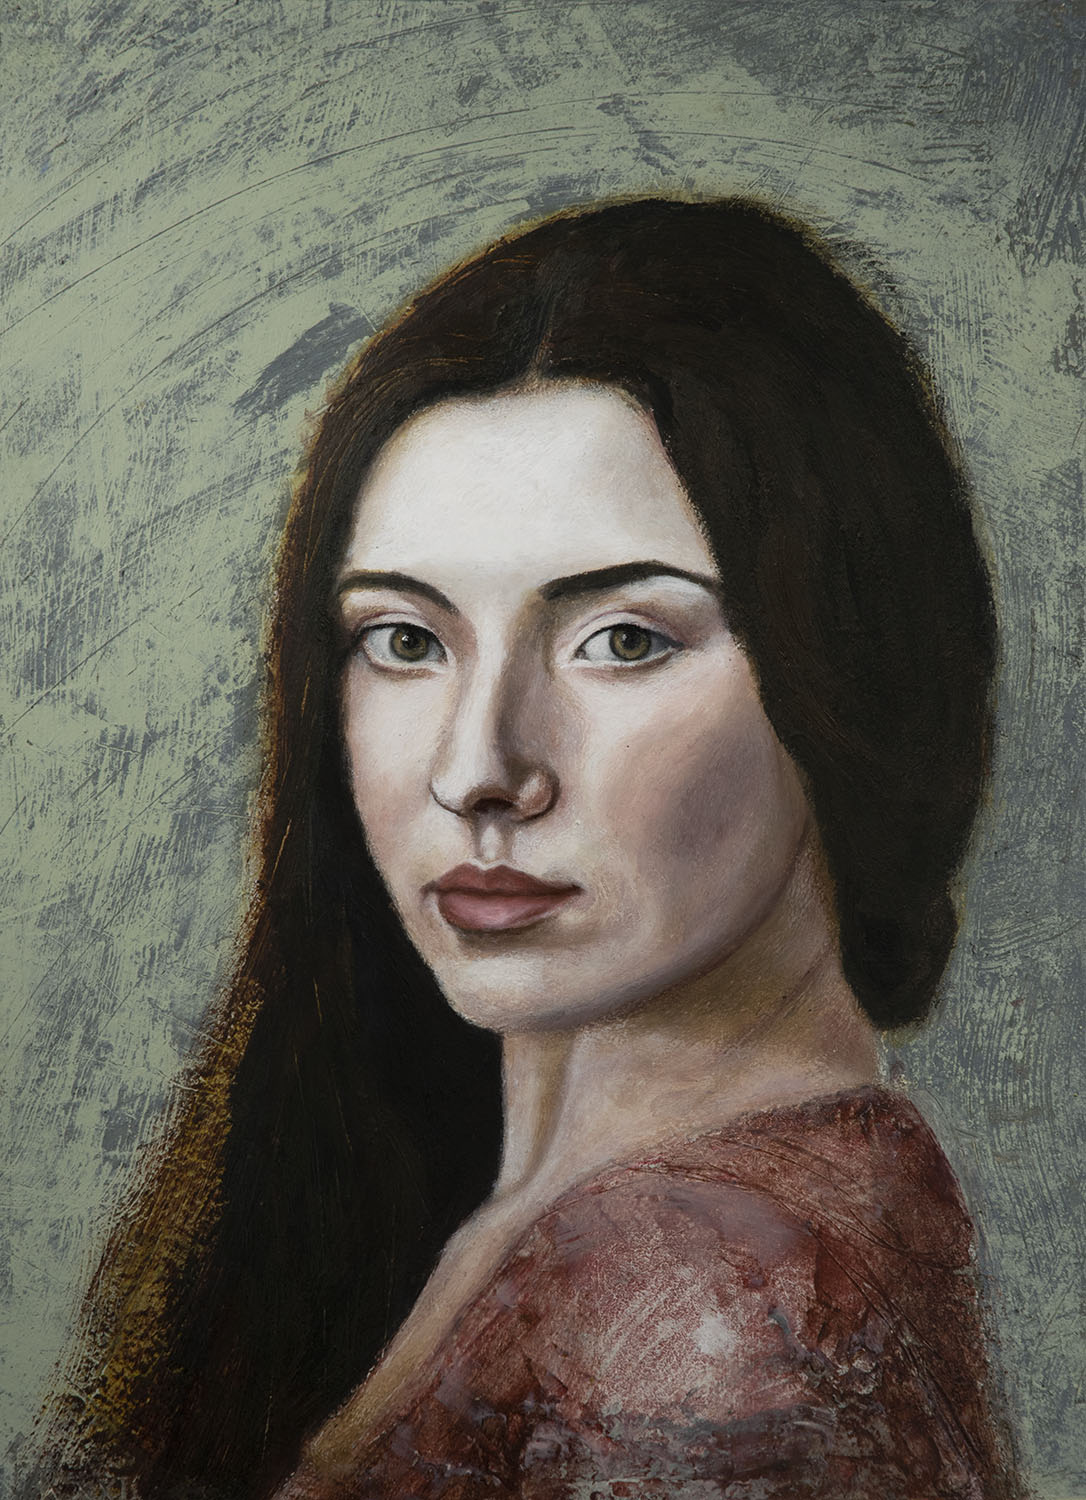 Gloria painting by andre romijn